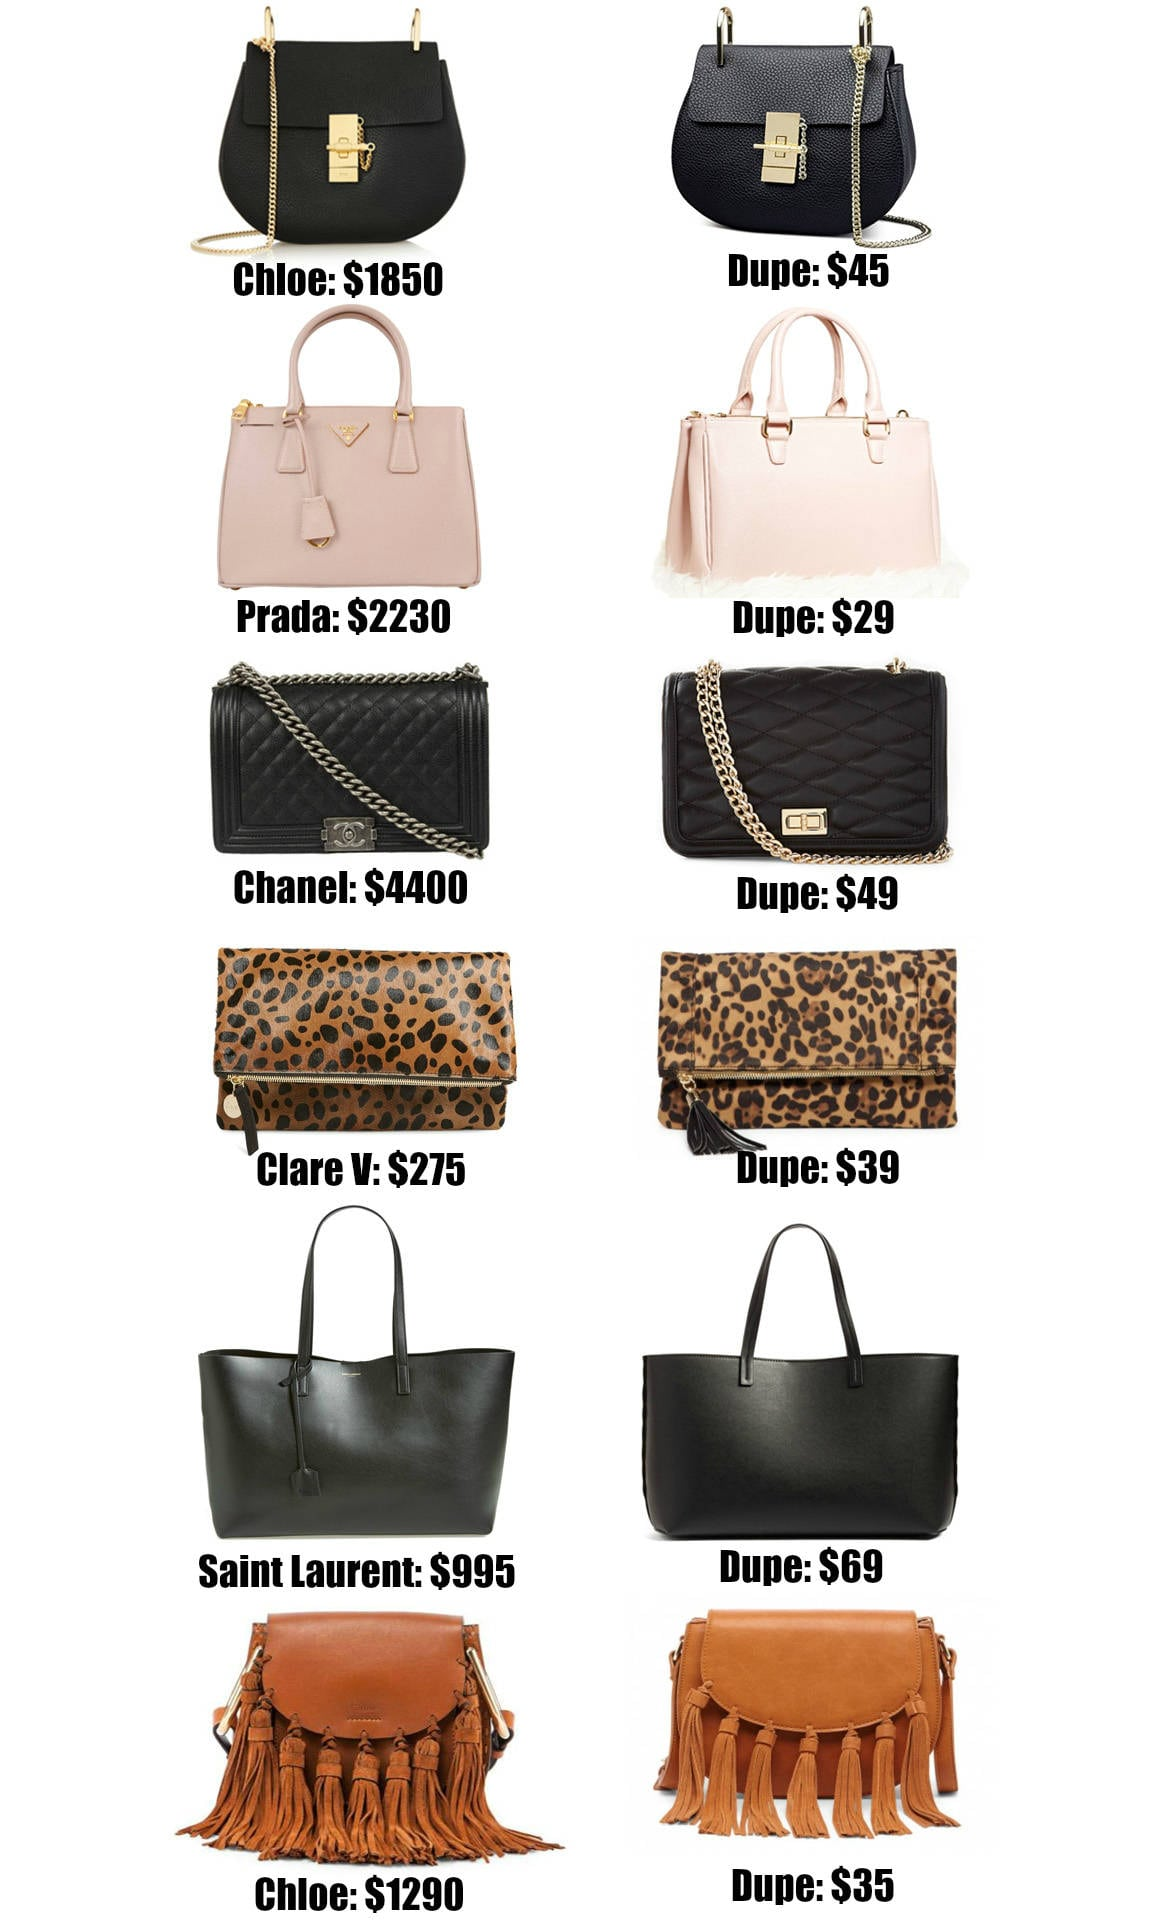 4bc72af5c The Ultimate Designer Bag Dupes Guide by popular Orlando fashion blogger  Mash Elle